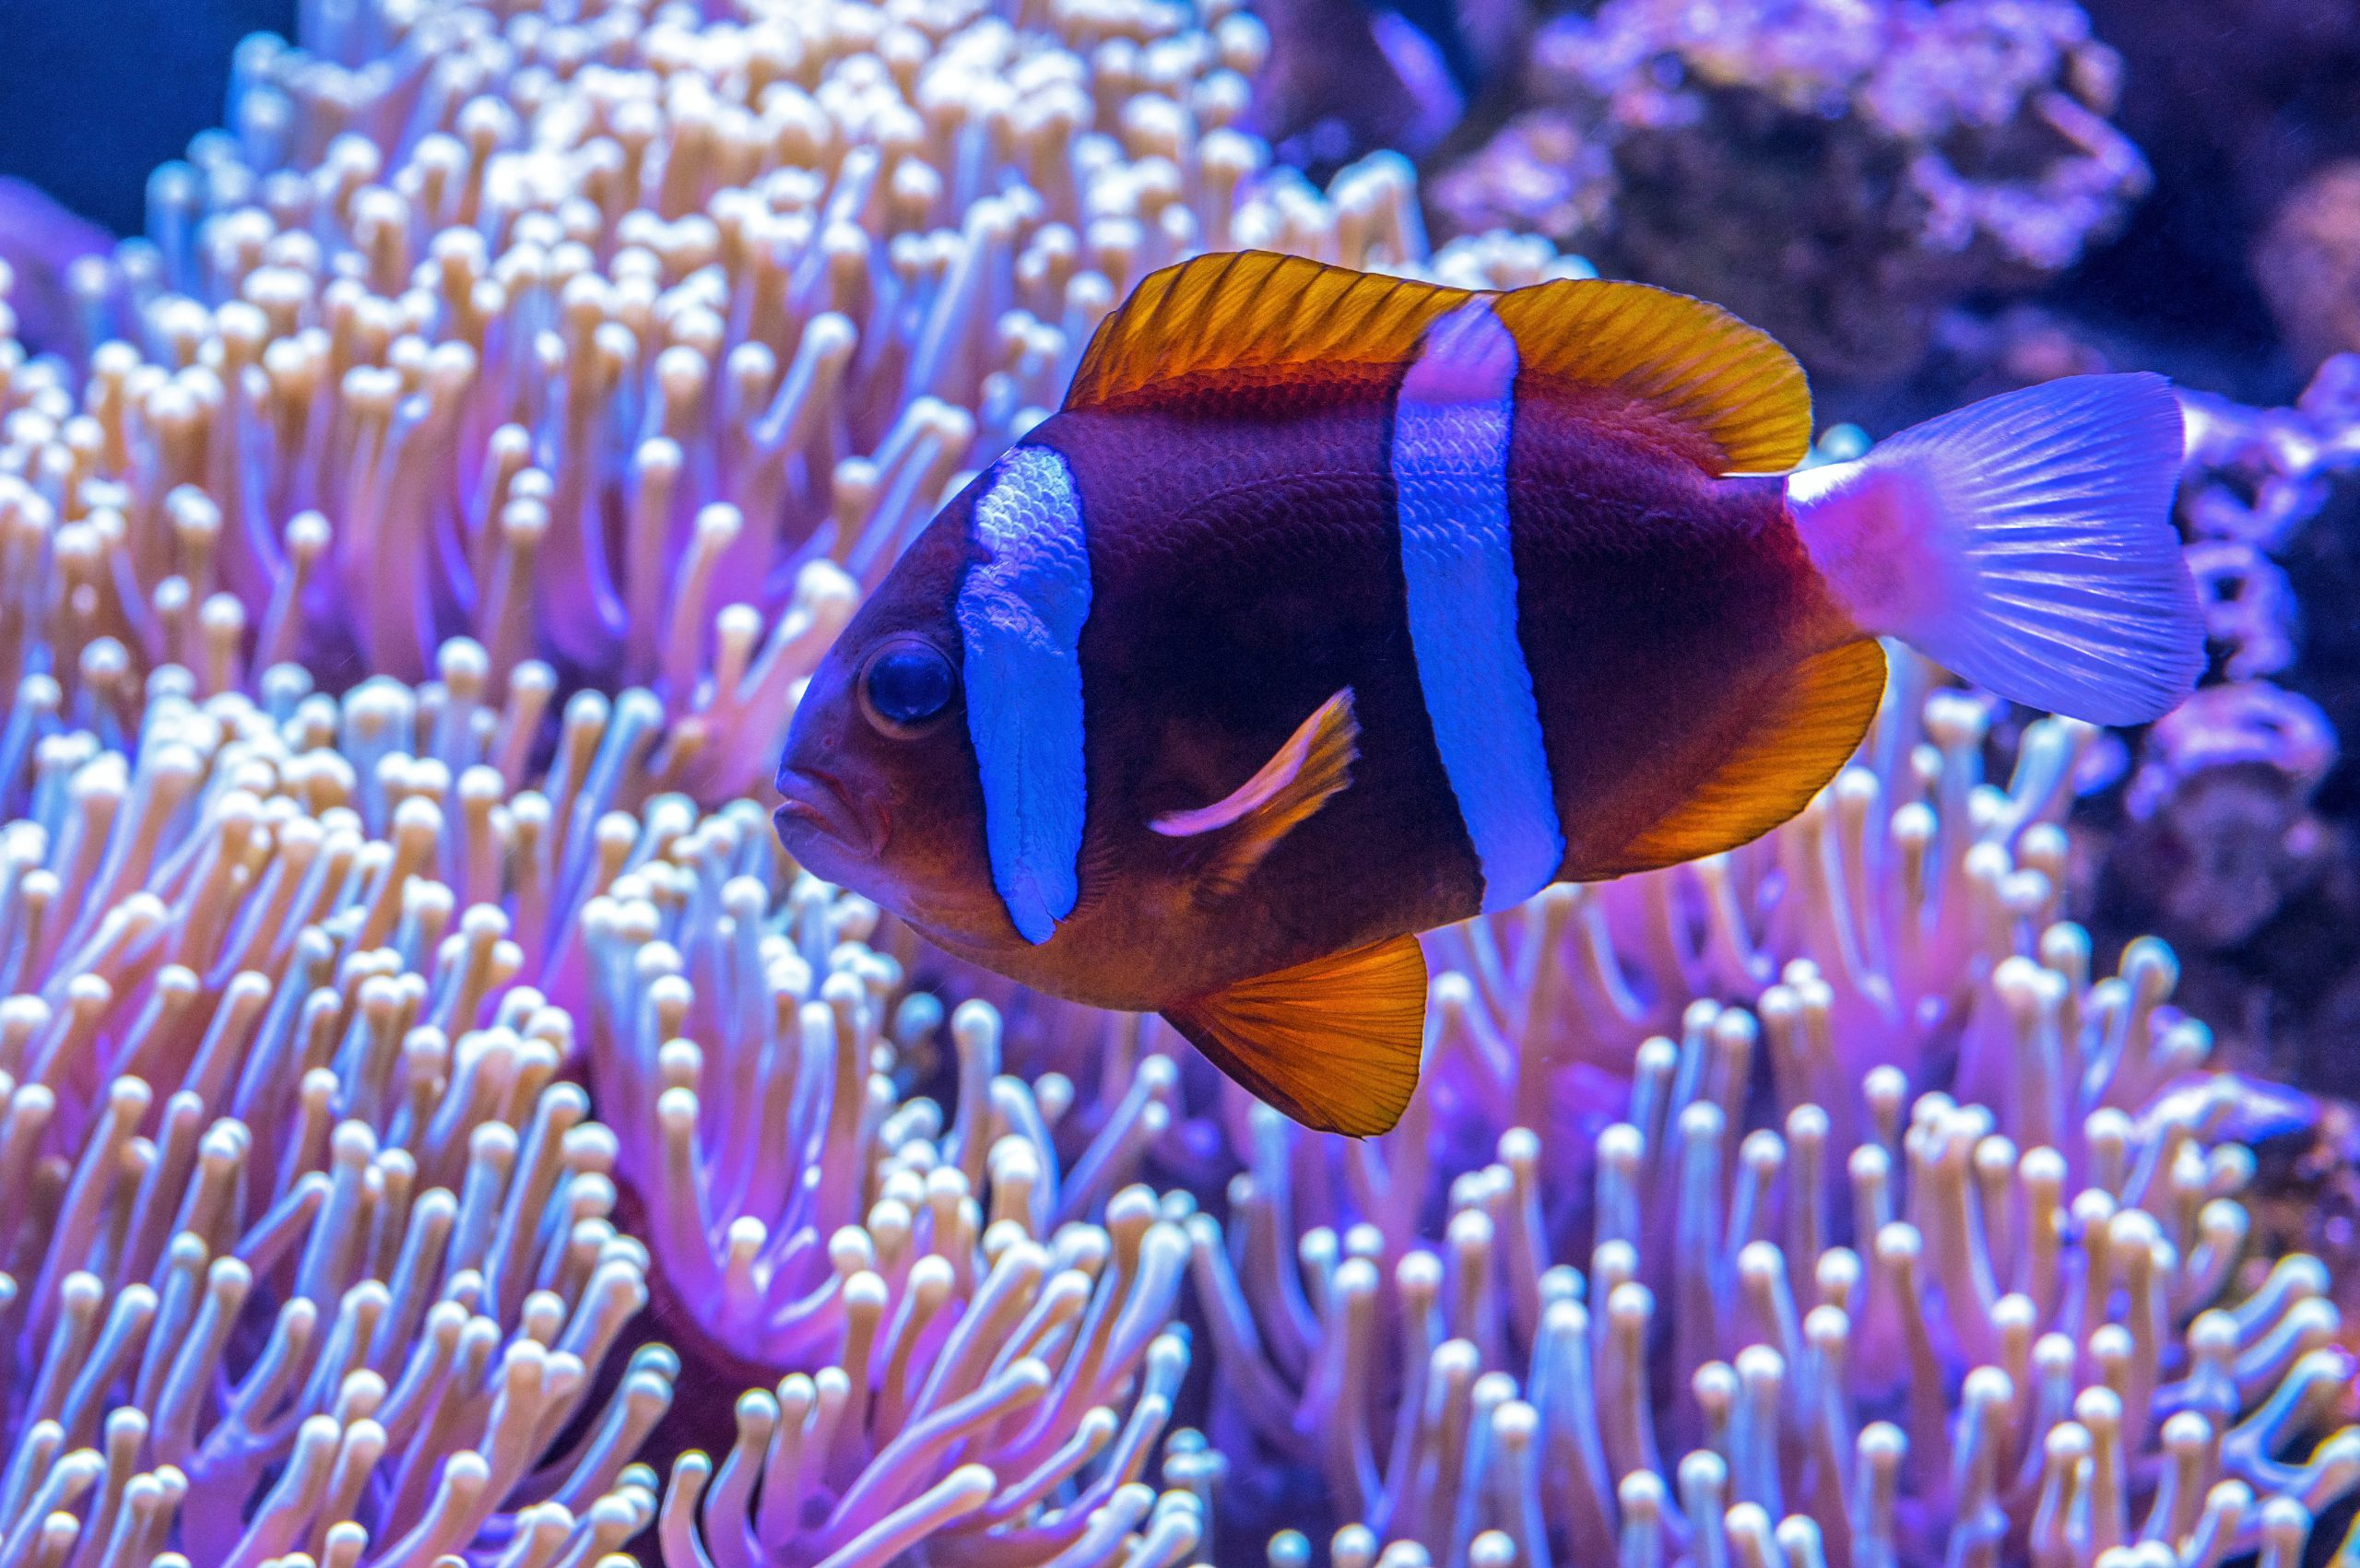 Artificial Light Impacting Coral Reef Species: A Case Study Image